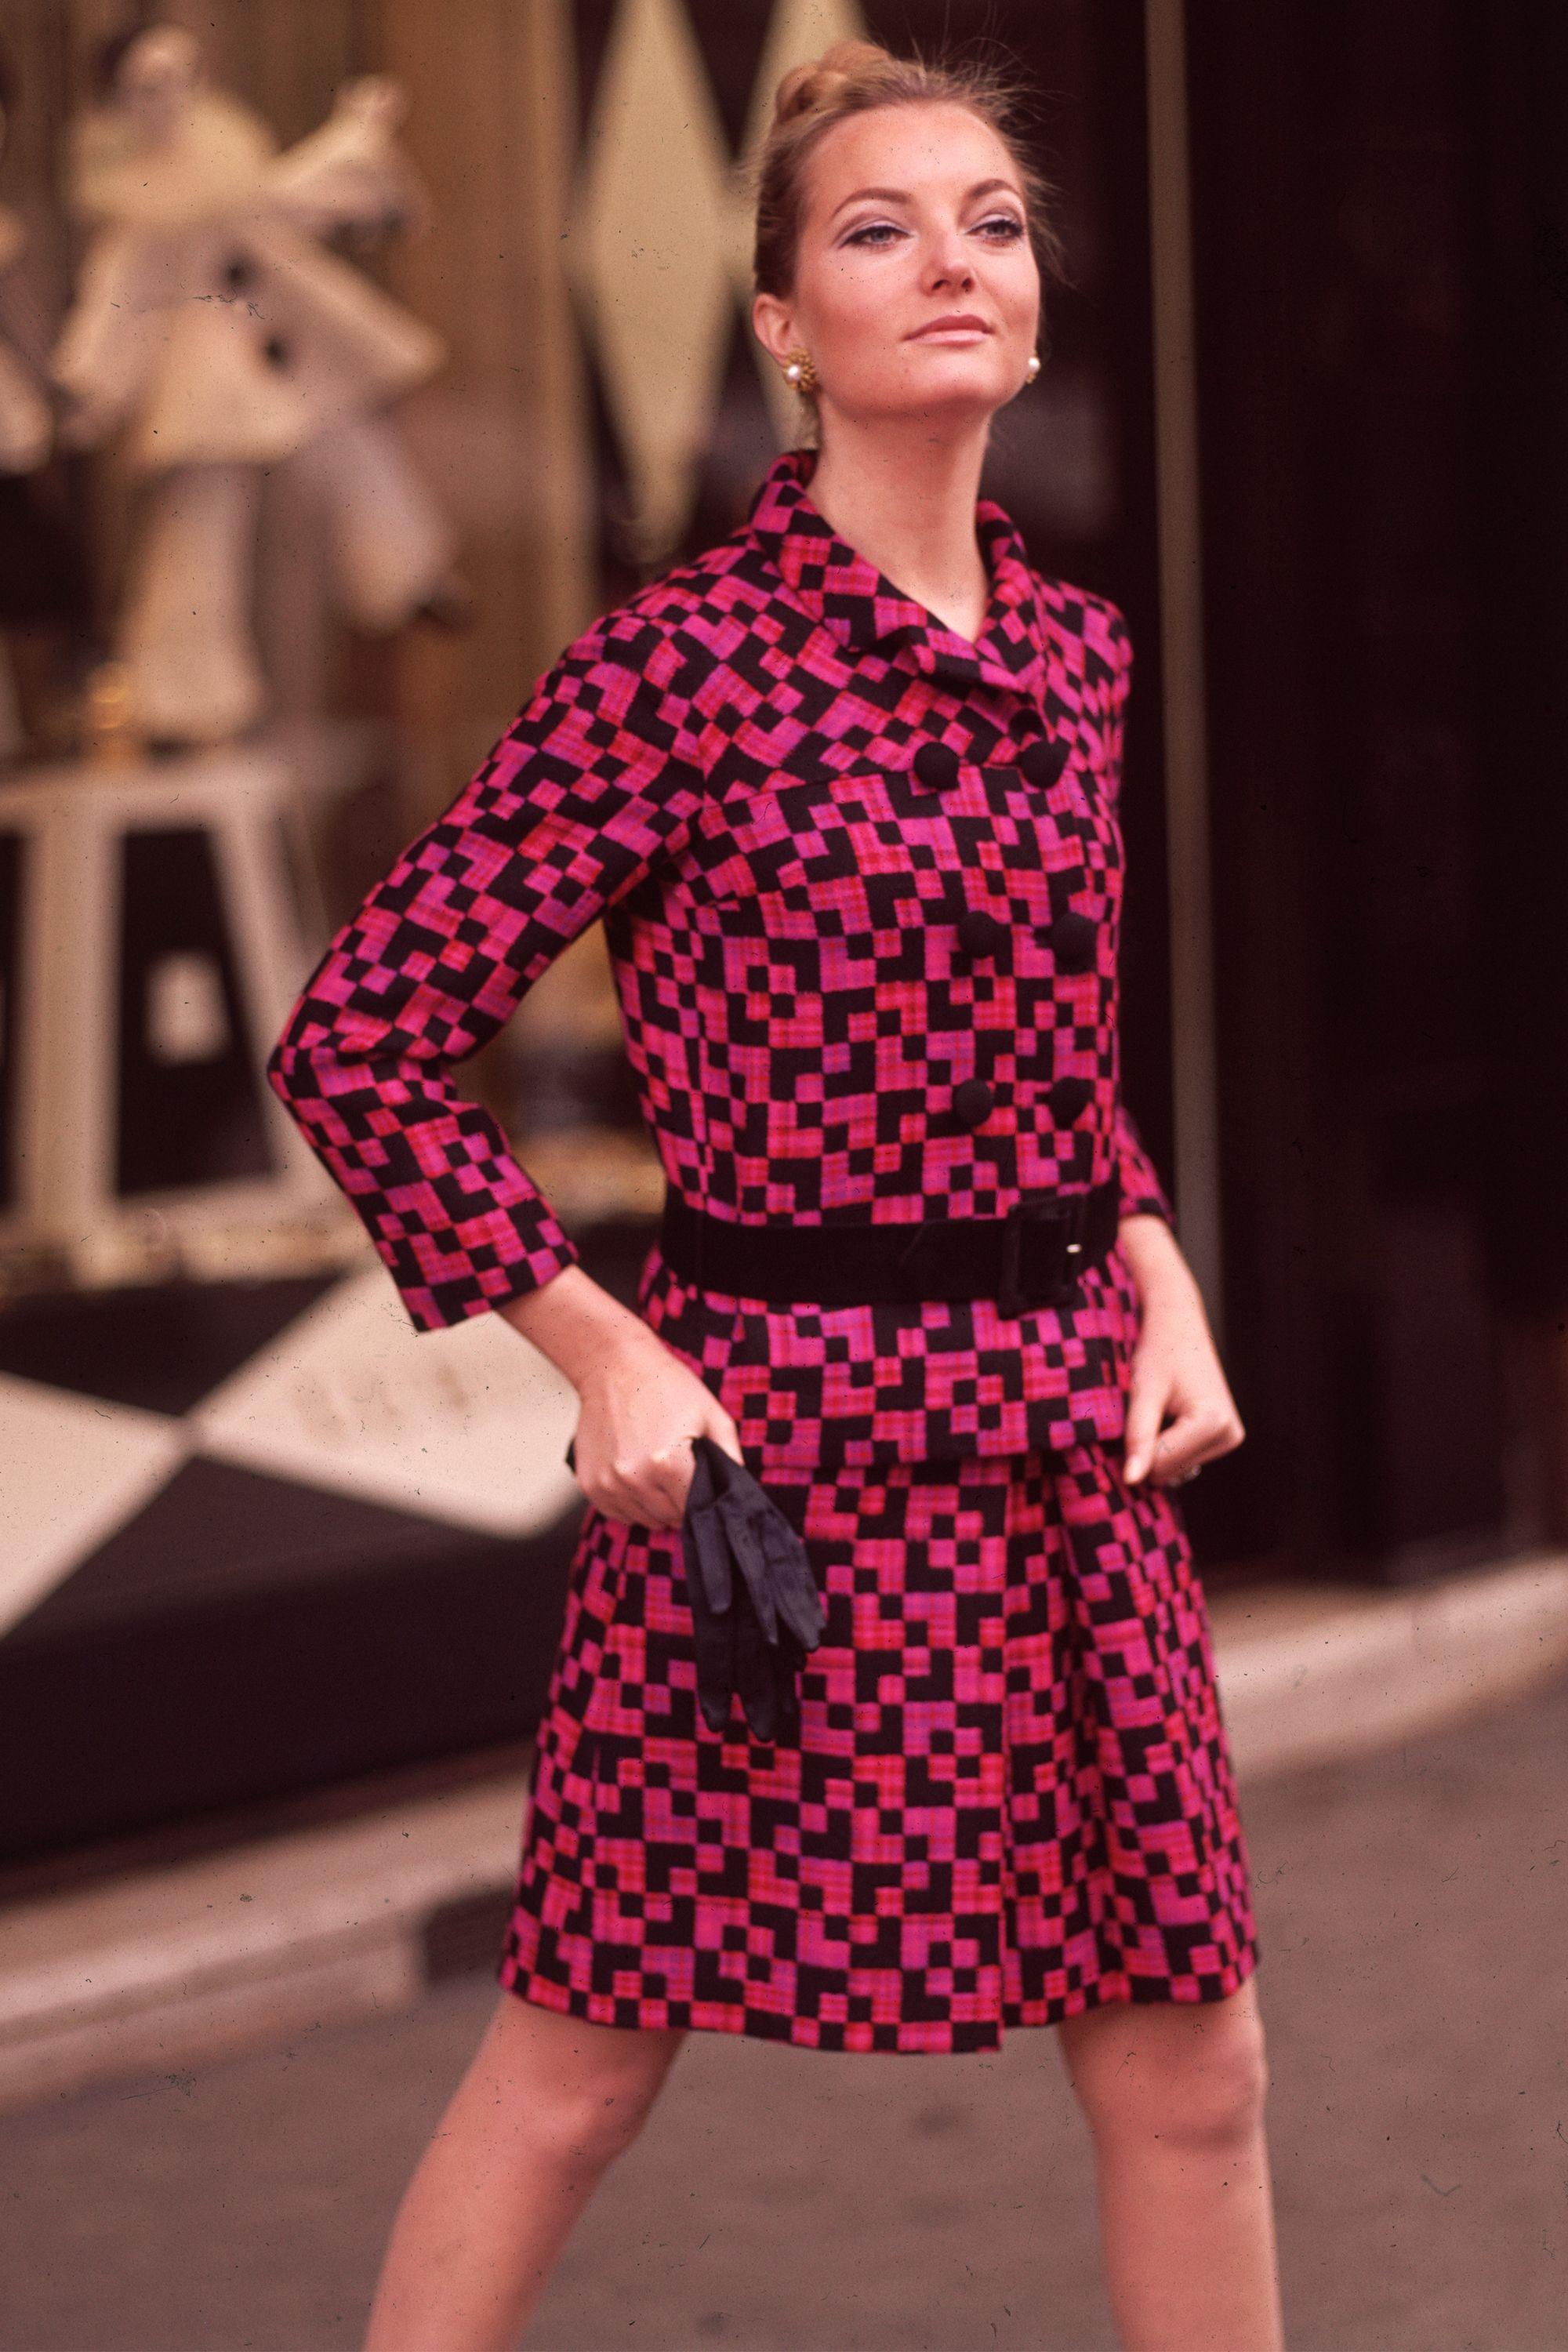 f4620271d8190 Best 1960s Fashion Trends and Outfits - 60s Fashion and Style